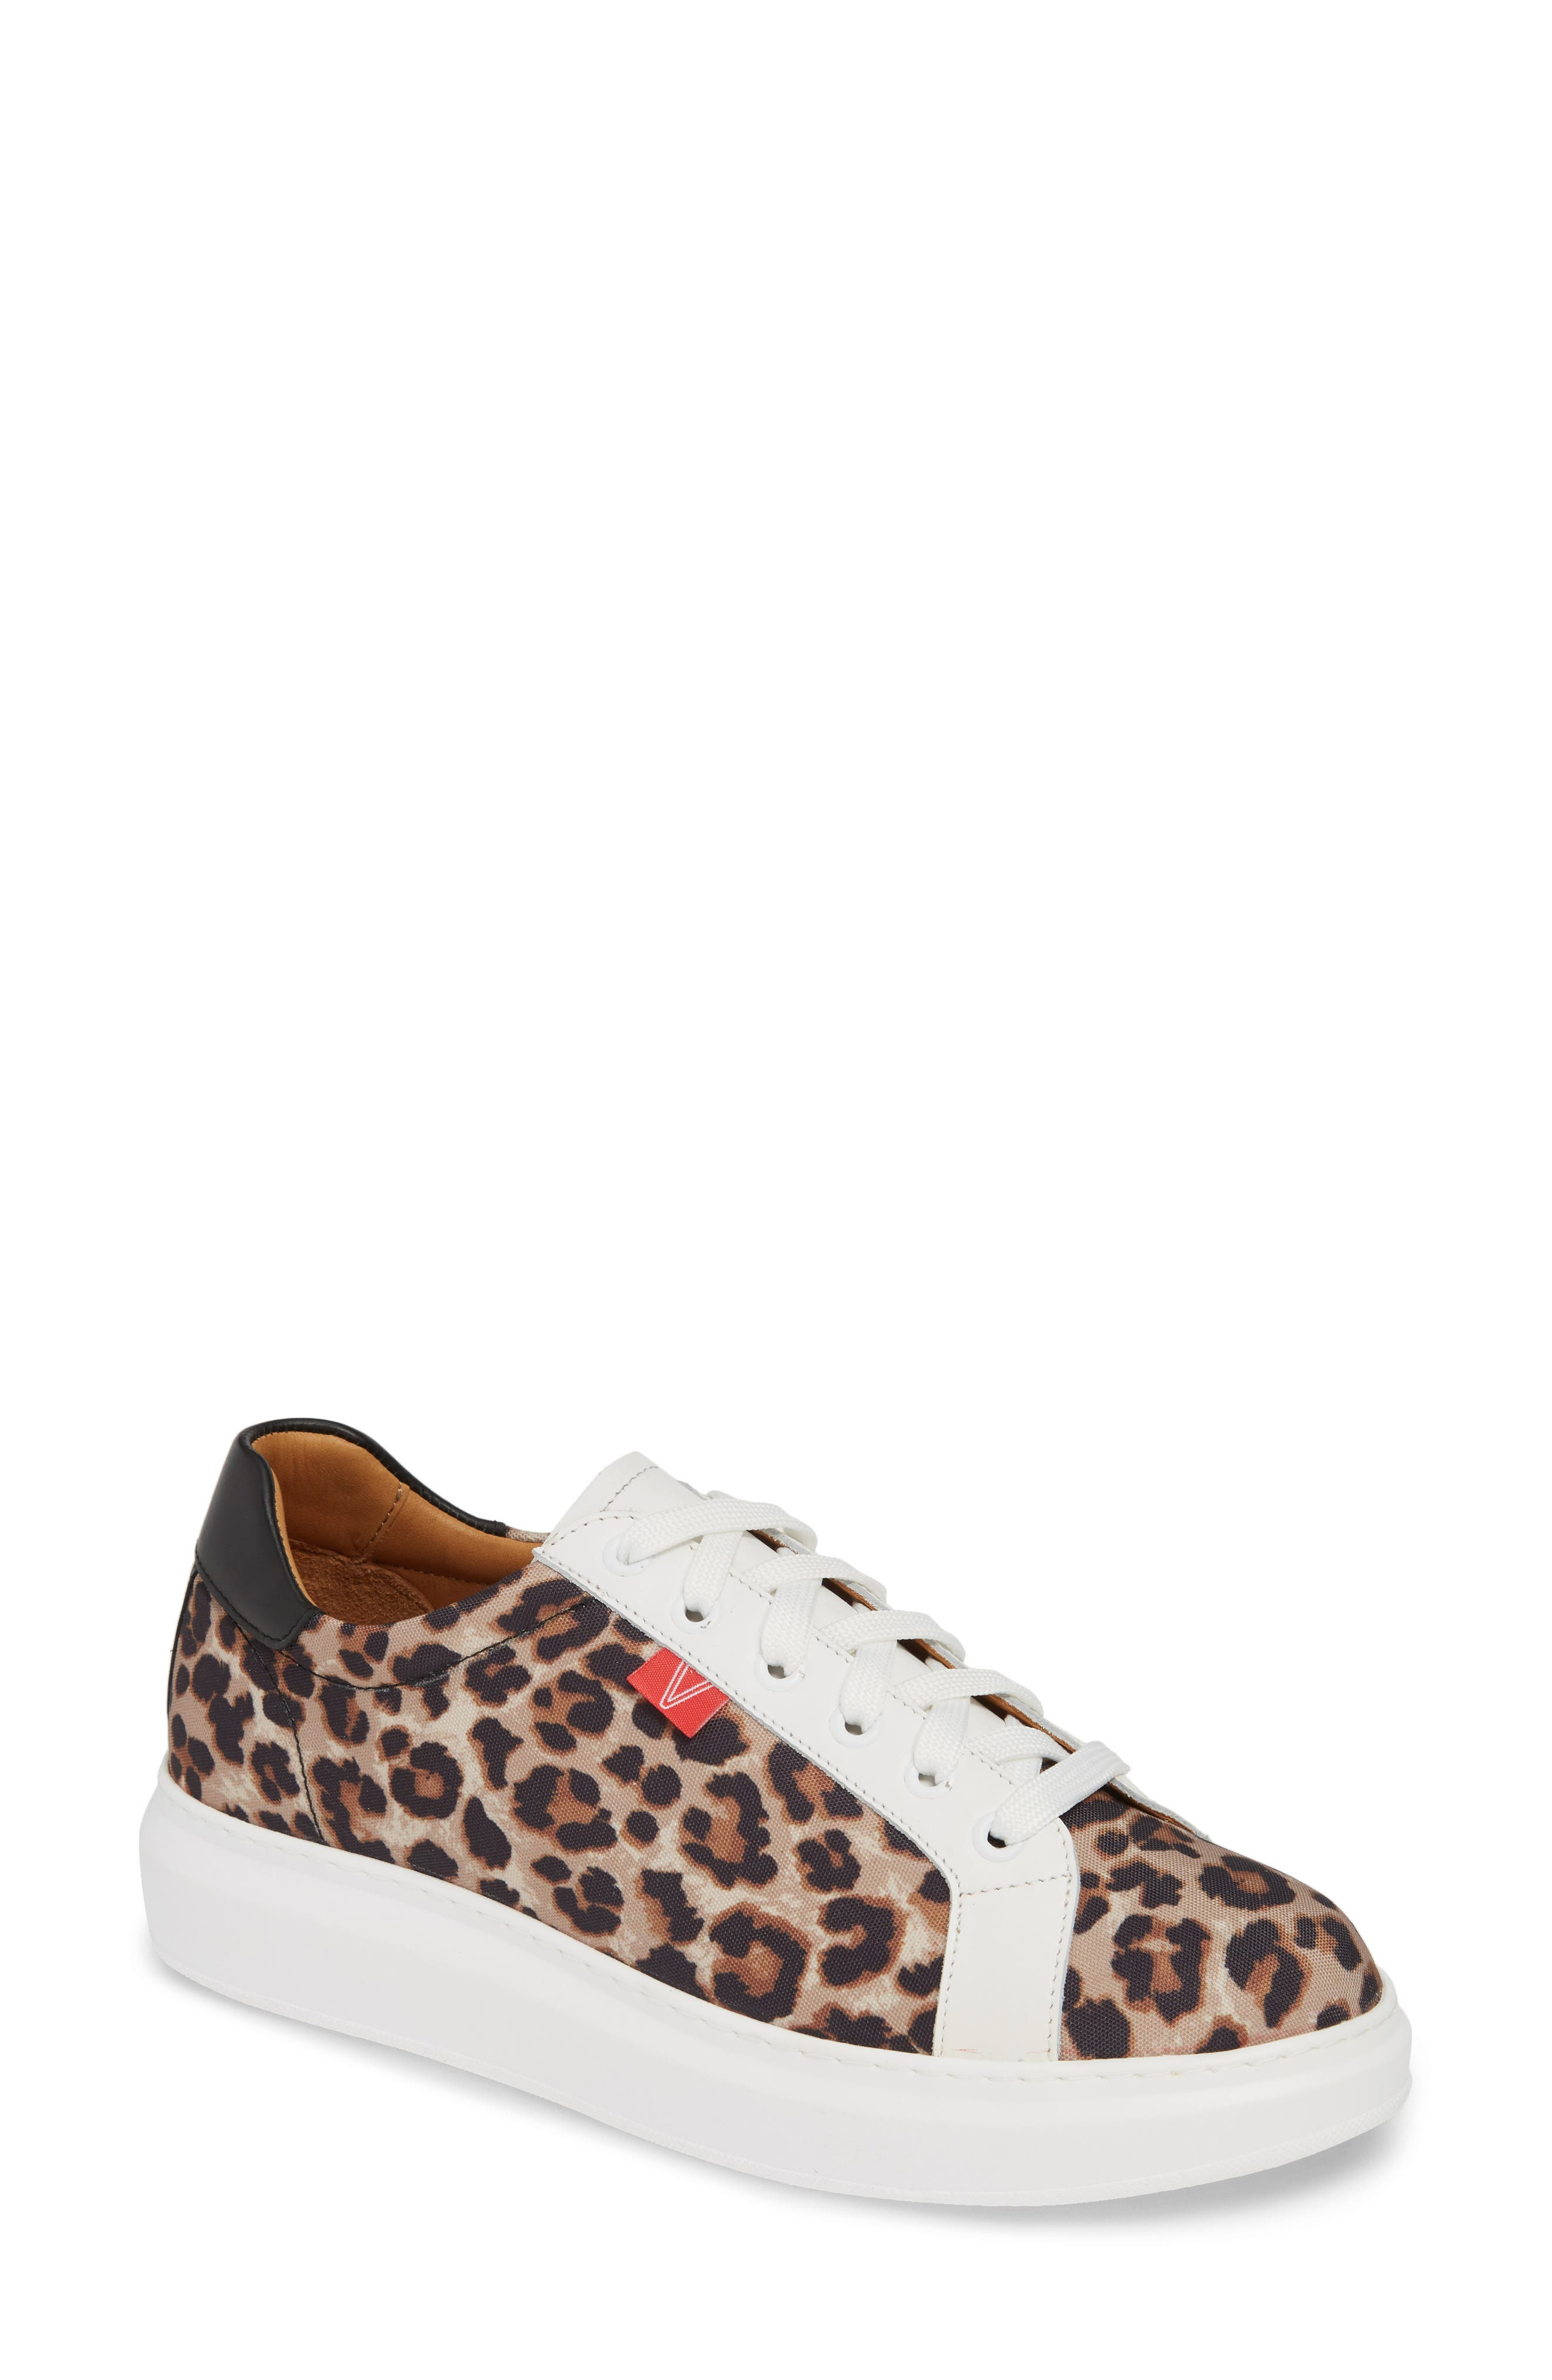 VERONICA BEARD, Daelyn Leopard Print Sneaker, Main thumbnail 1, color, LEOPARD